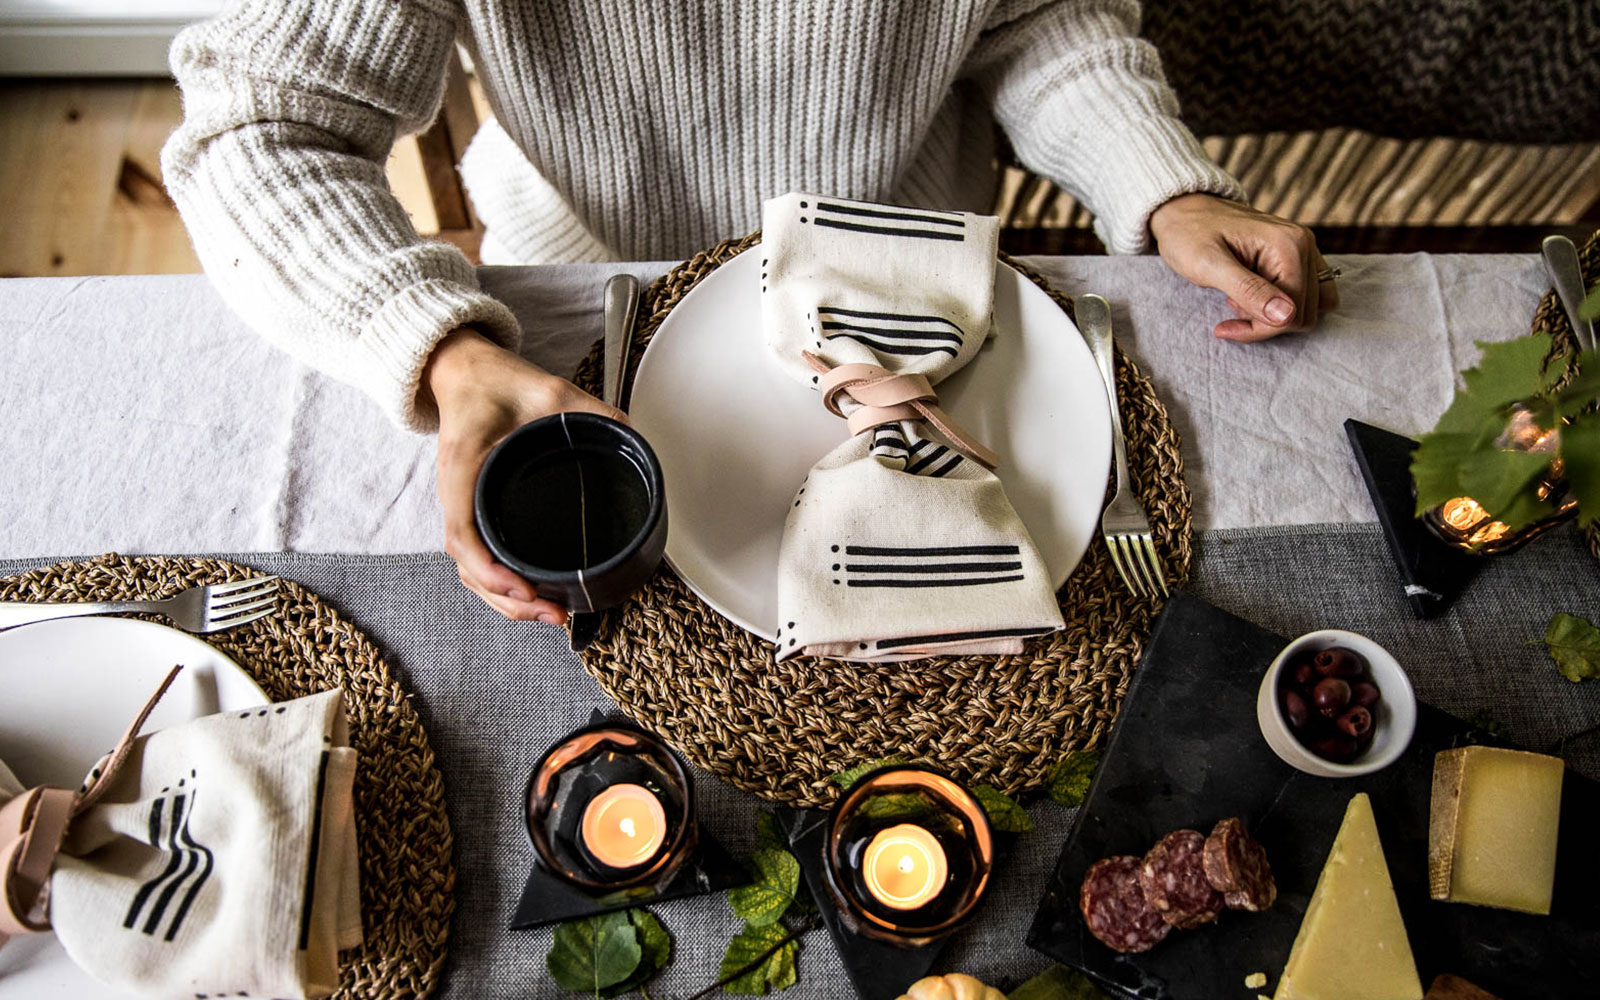 A Few simple and easy tips to make a beautiful and natural holiday table for Thanksgiving and Christmas. Great Tips for a Minimal Thanksgiving Table. Get them on with The Citizenry and The Fresh Exchange.